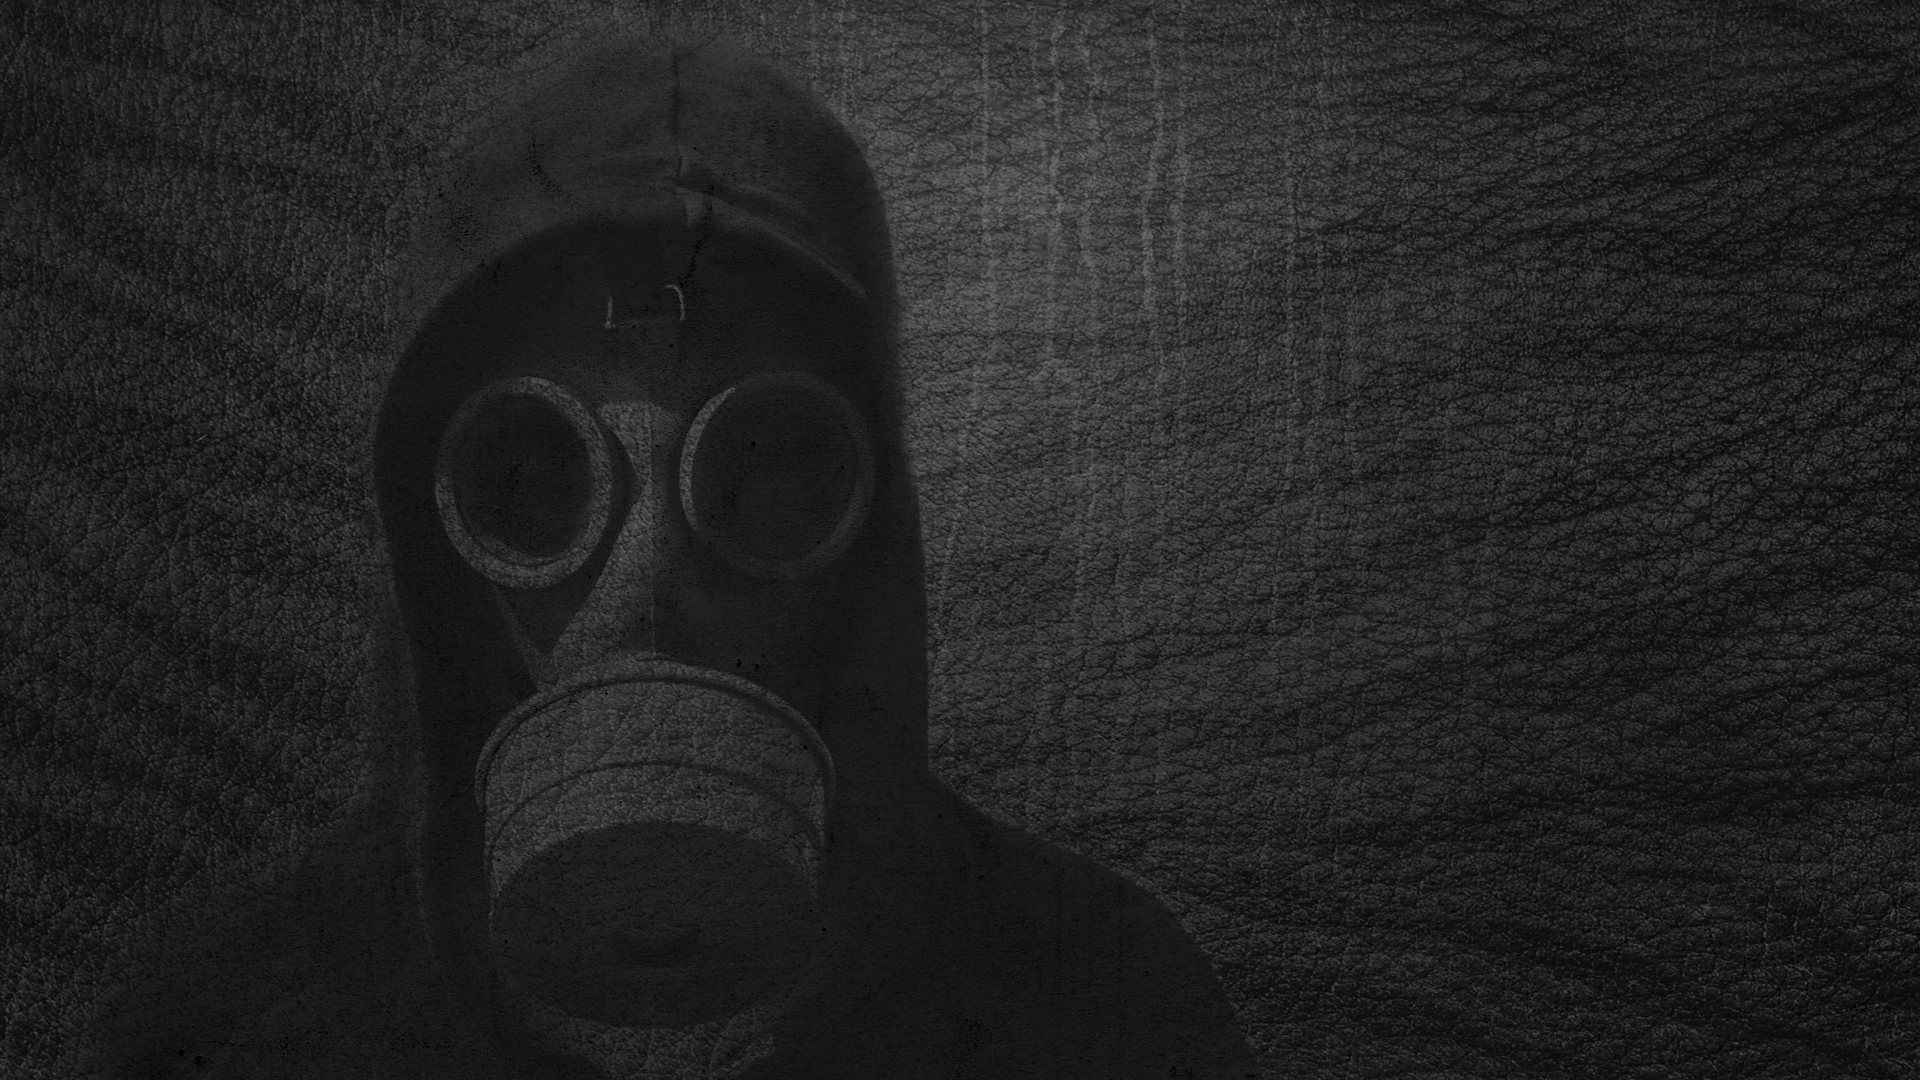 Gas Mask Hd Wallpaper Background Image 1920x1080 Id137387